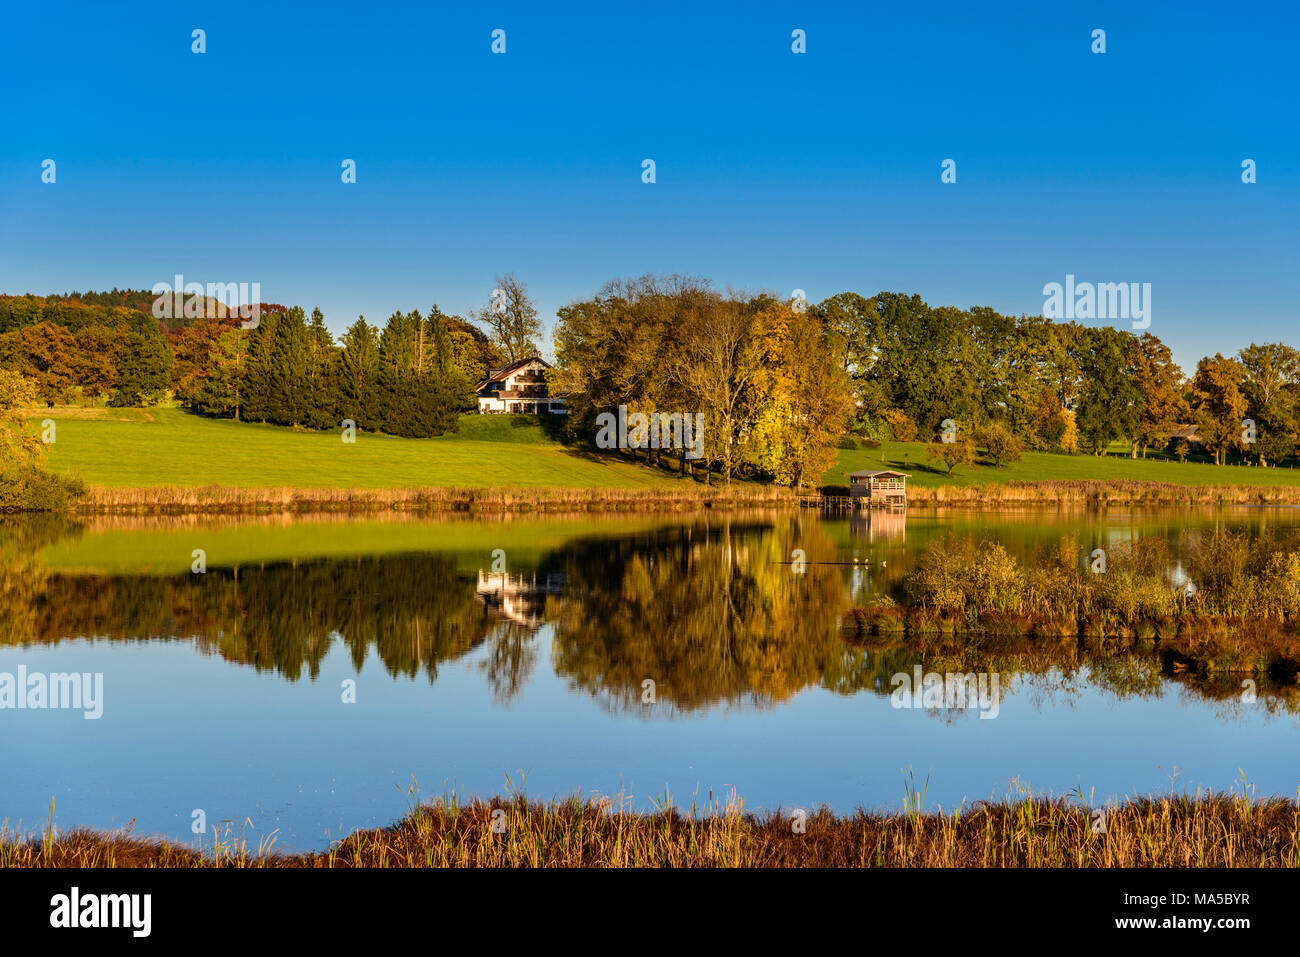 Germany, Bavaria, Upper Bavaria, Ebersberg, Egglburger See (lake) Stock Photo